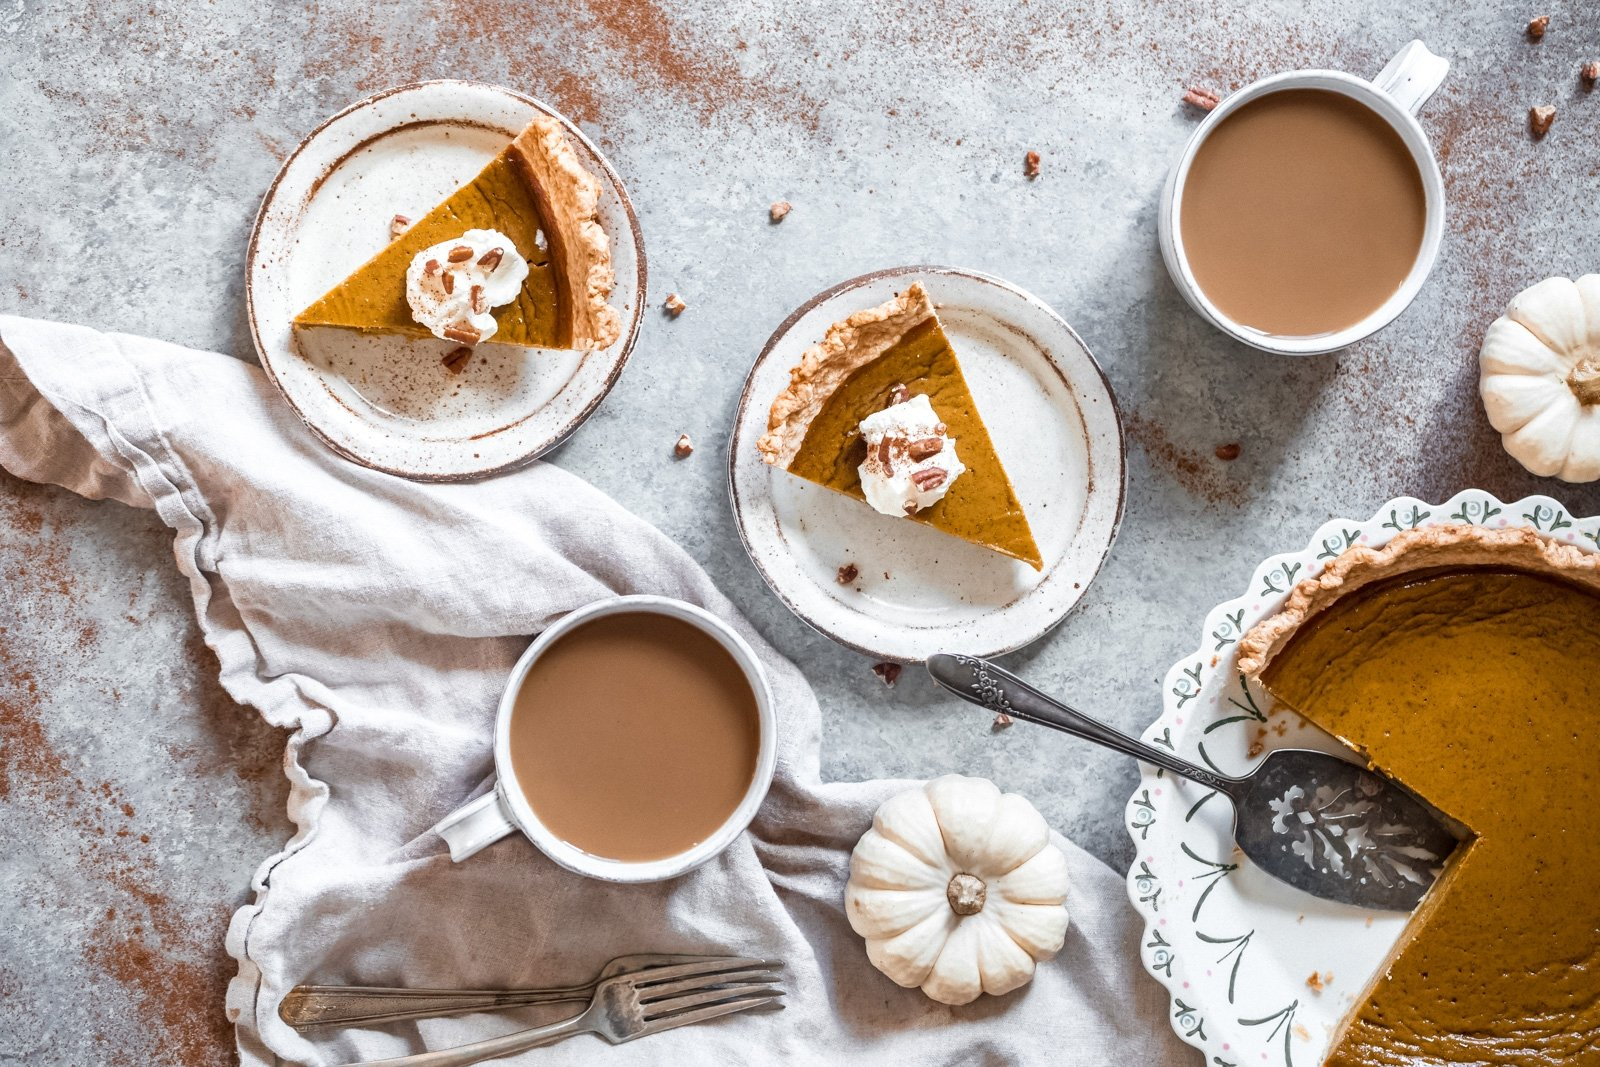 healthy pumpkin pie in a pie dish and on plates